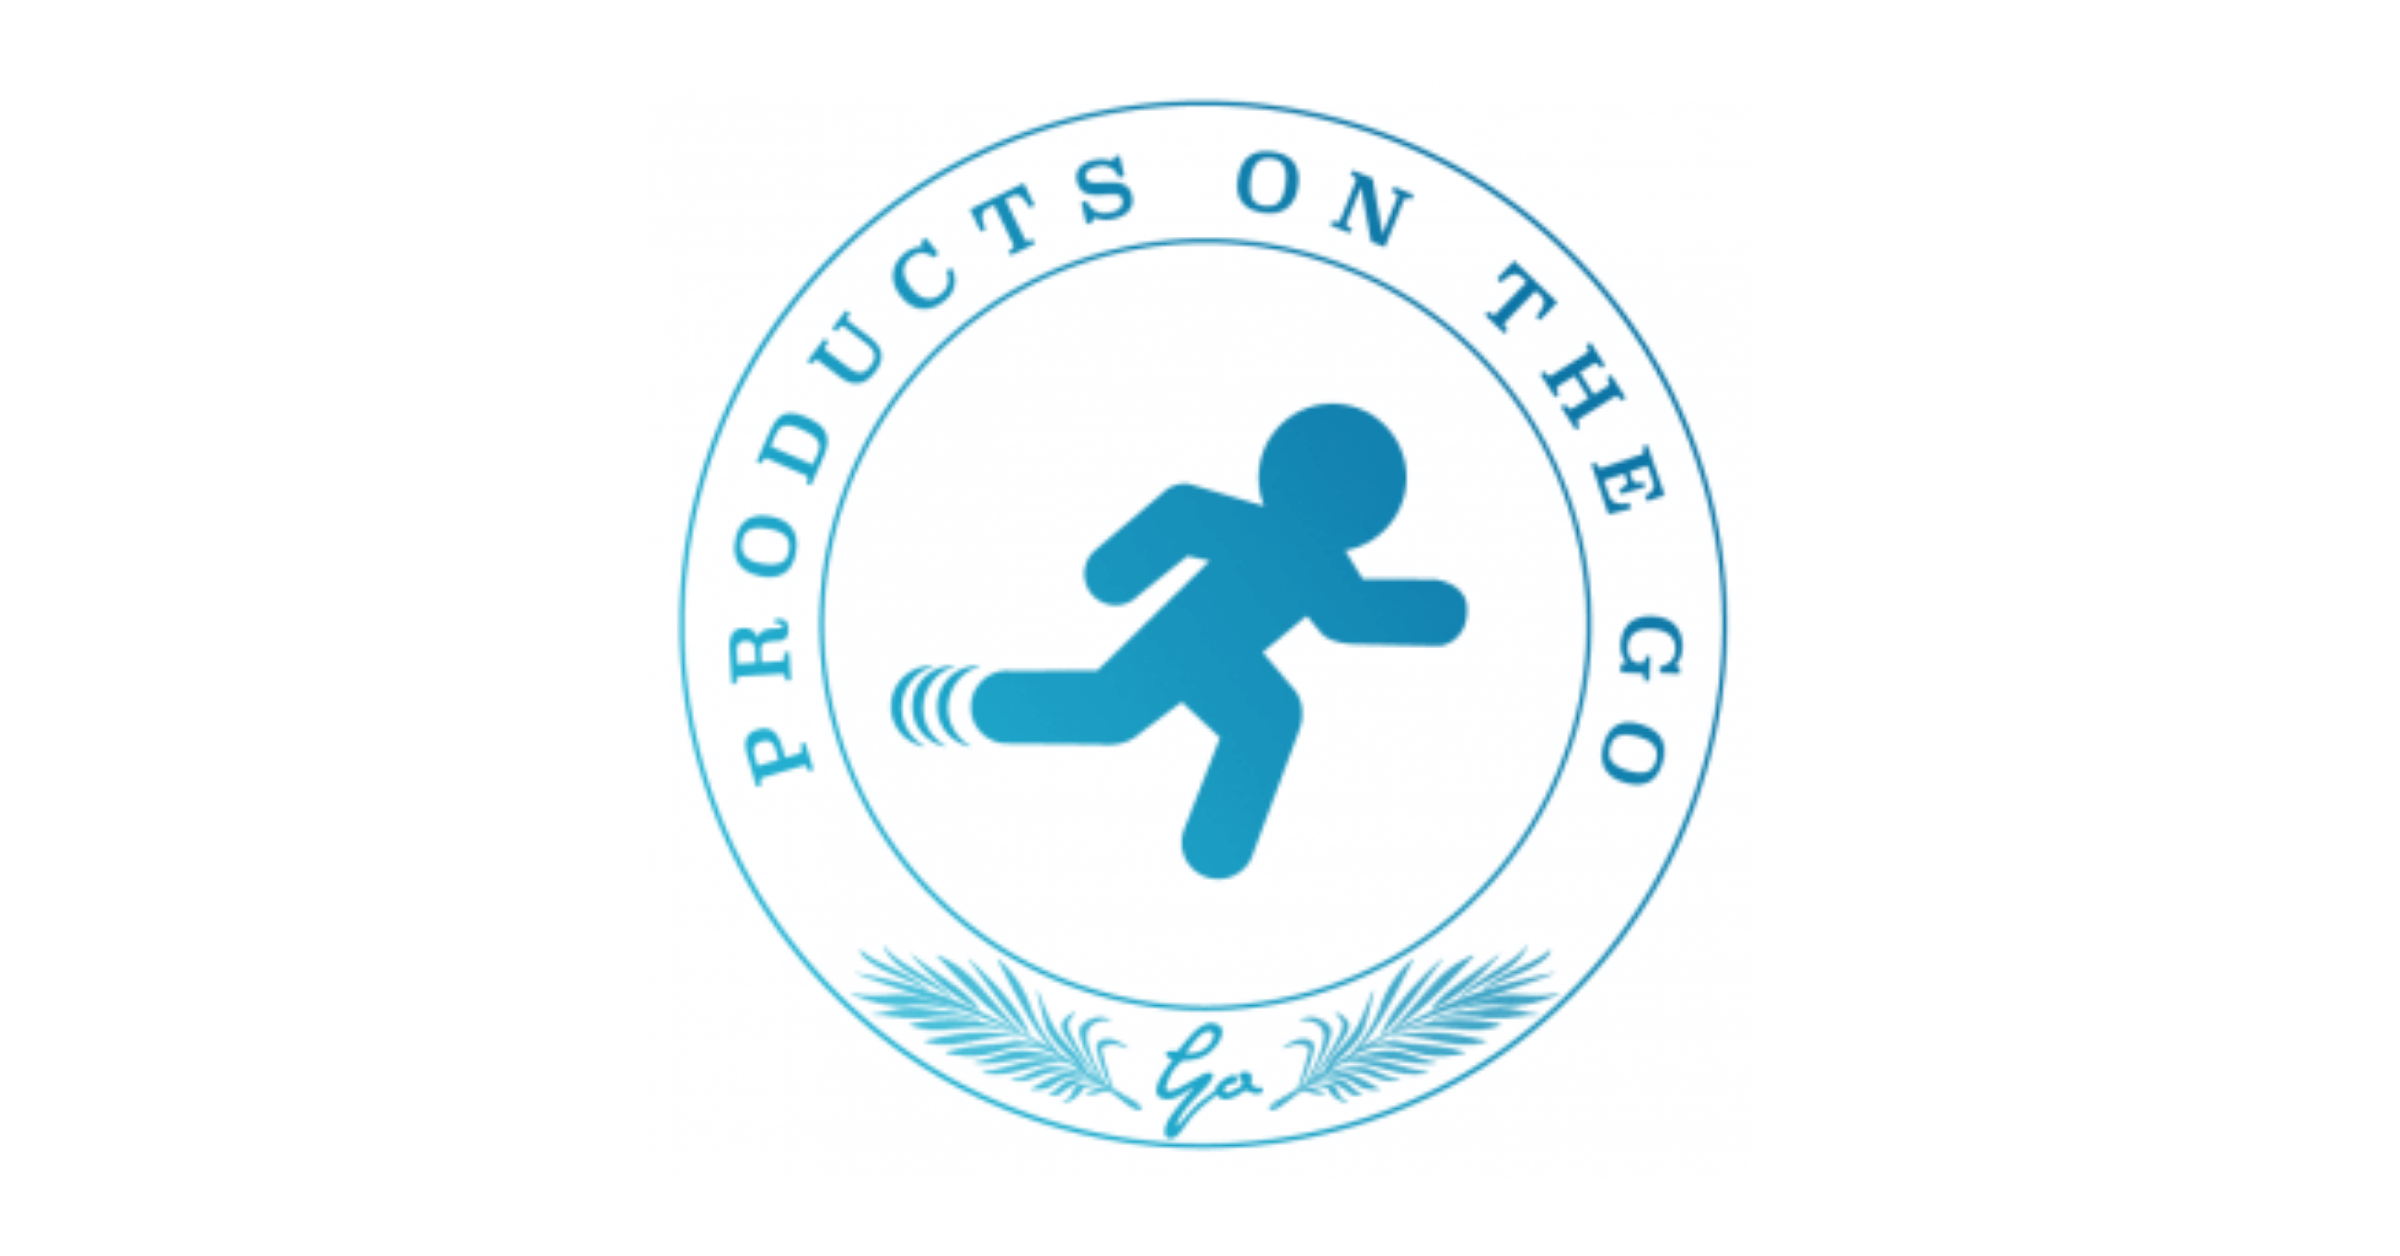 Products On The Go Receives European and Australian Patents for Little Toes Natural Disposable Swimmy Diapers.